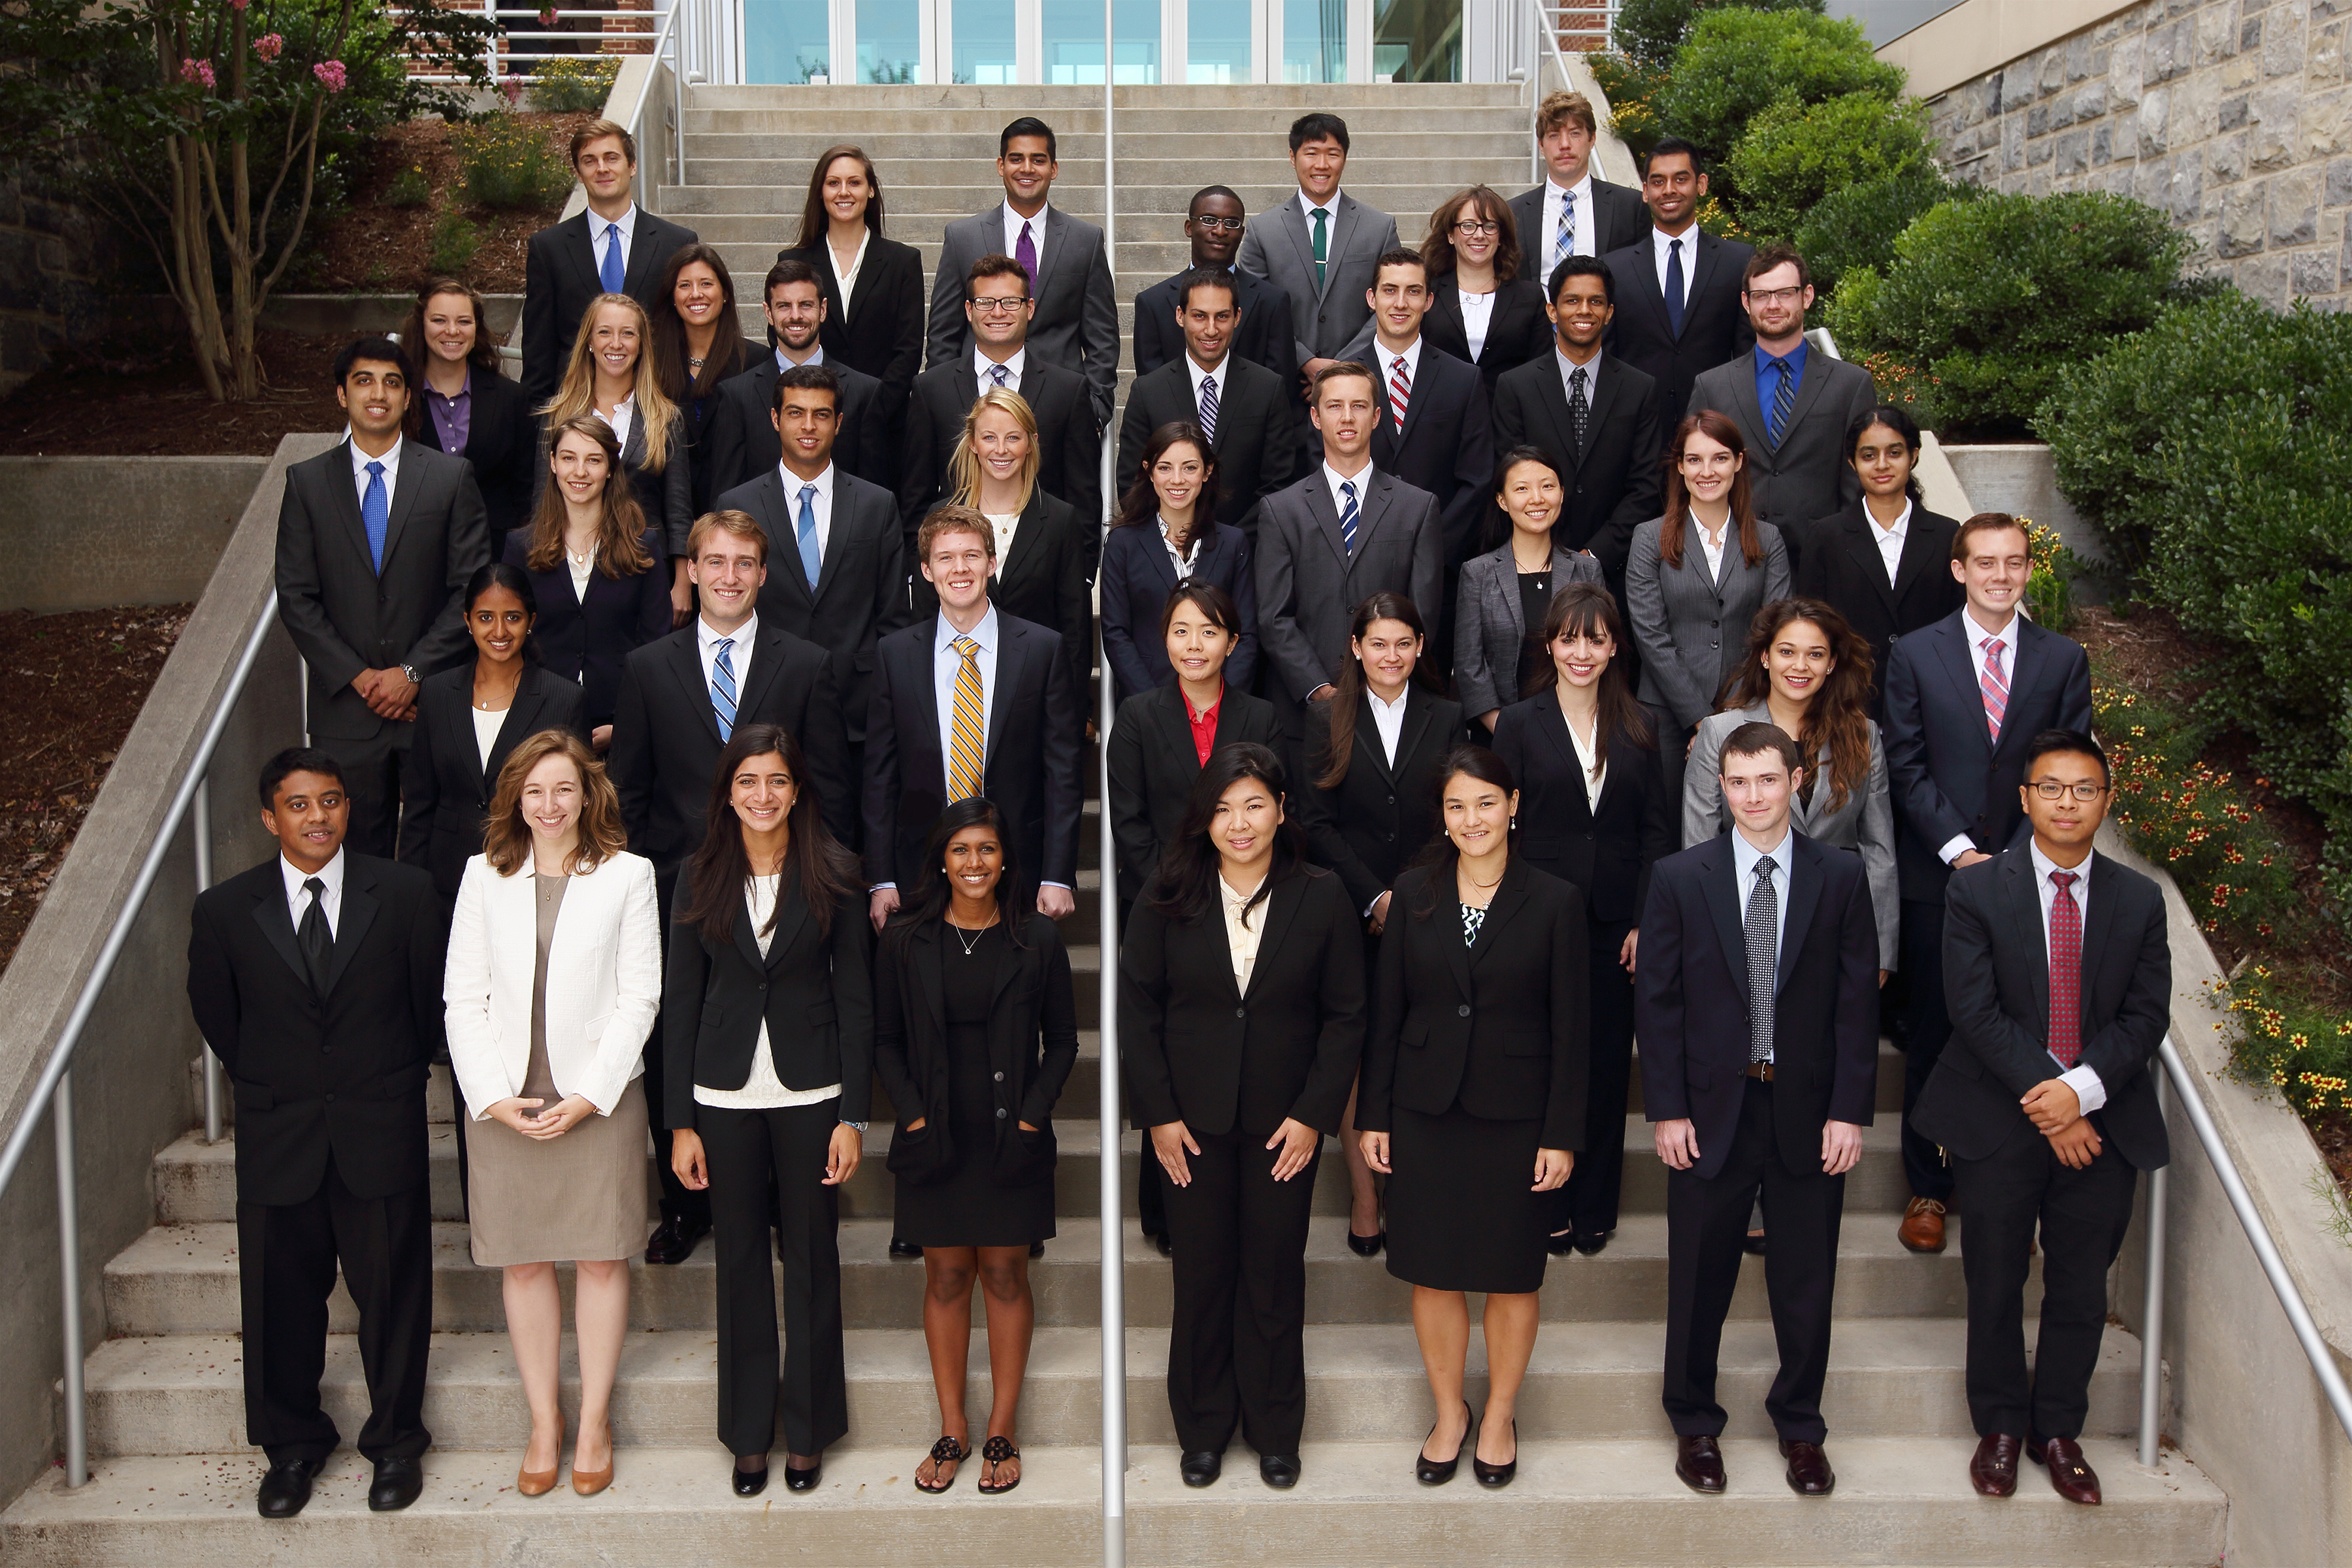 The Virginia Tech Carilion School of Medicine Class of 2018